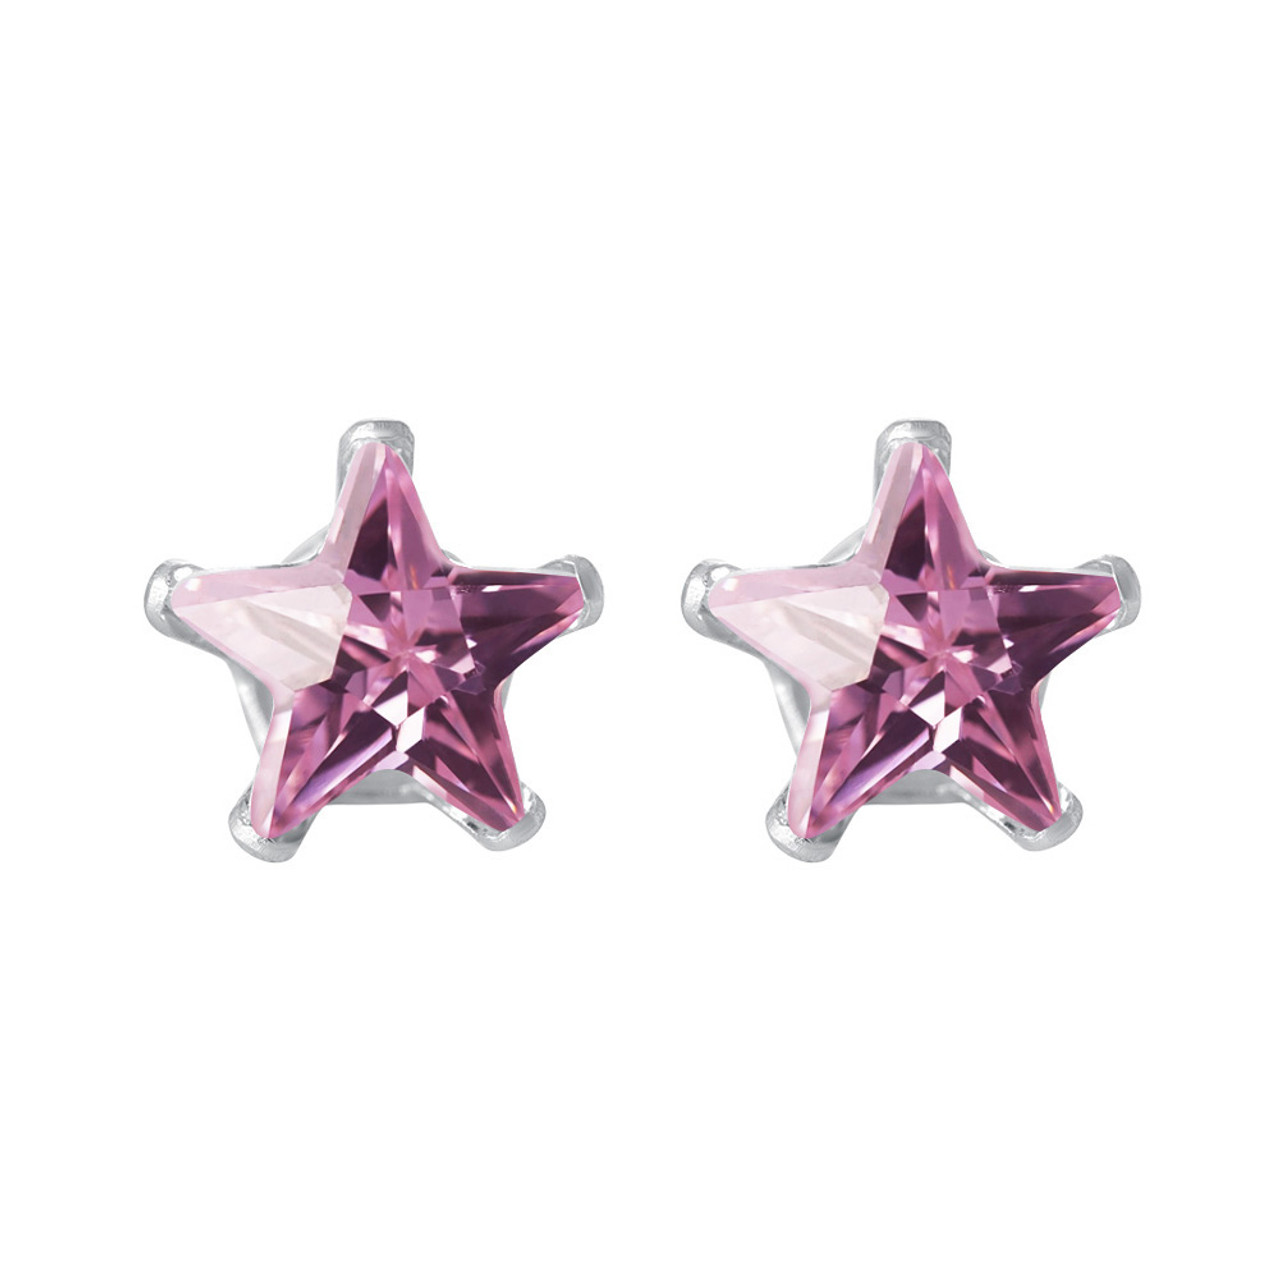 5mm Star Shape Pink Cubic Zirconia CZ Post Back Sterling Silver Stud Earrings